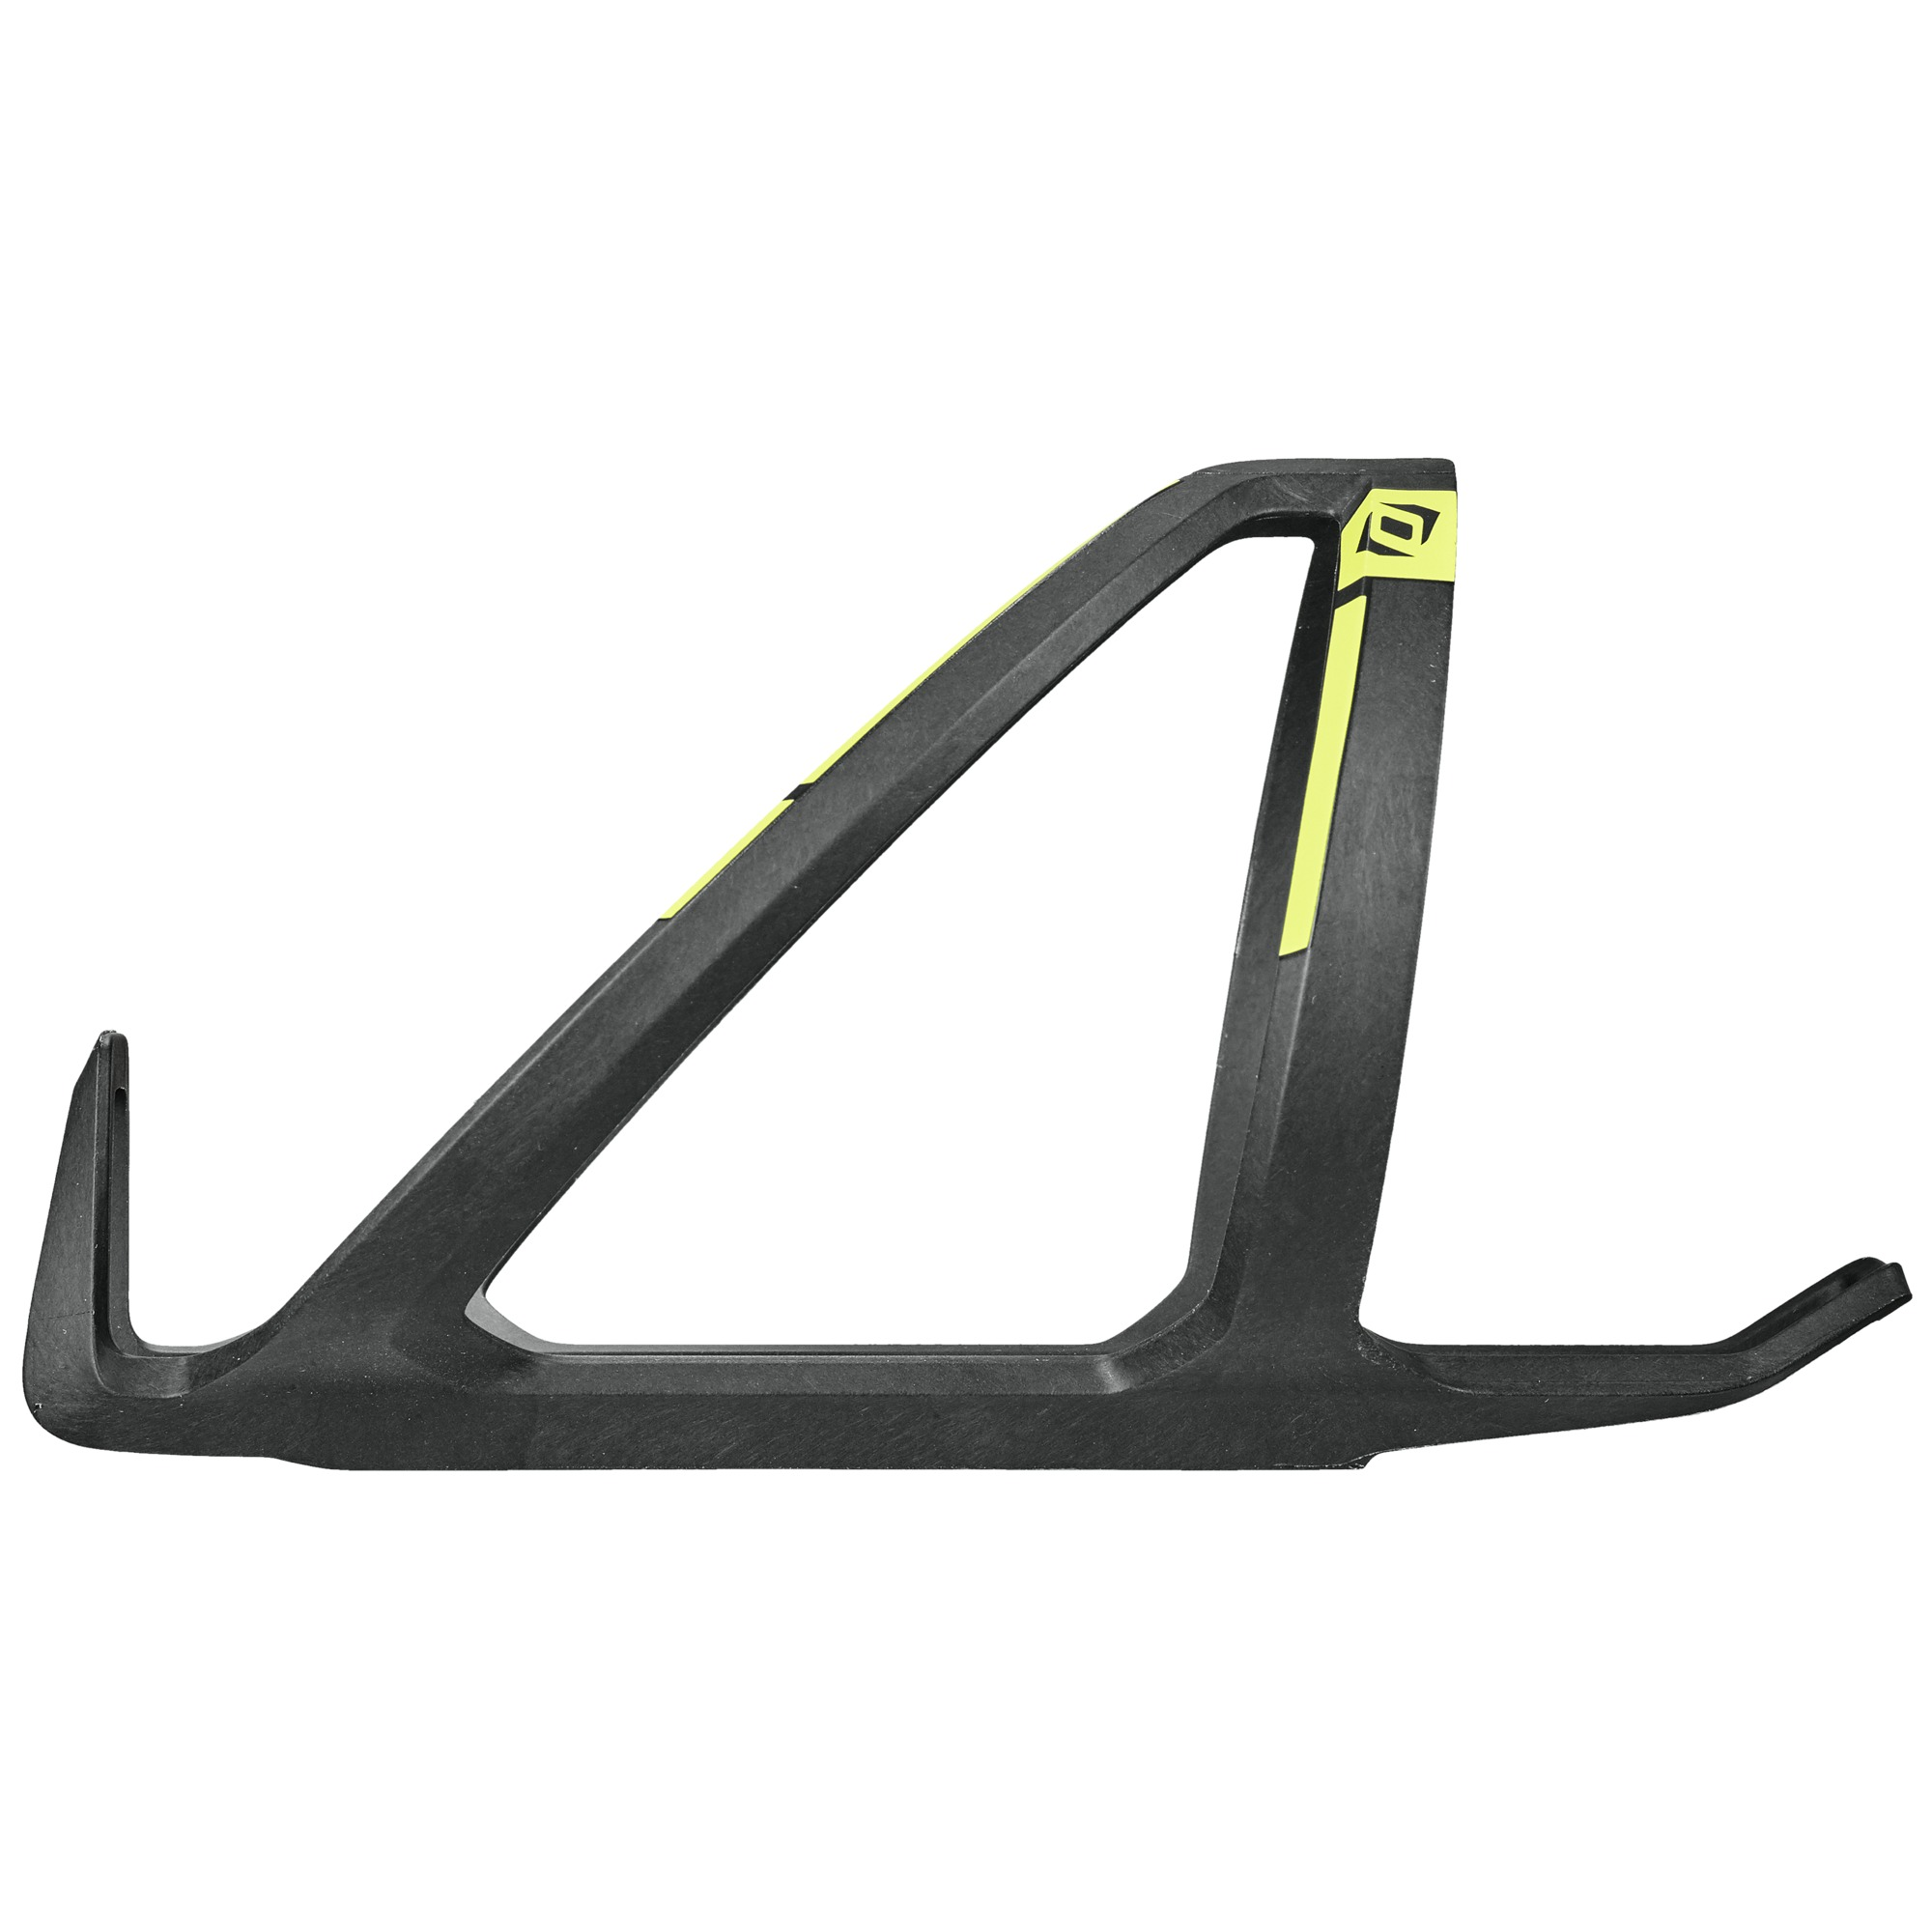 Syncros Coupe Cage 1.0 Bottle Cage